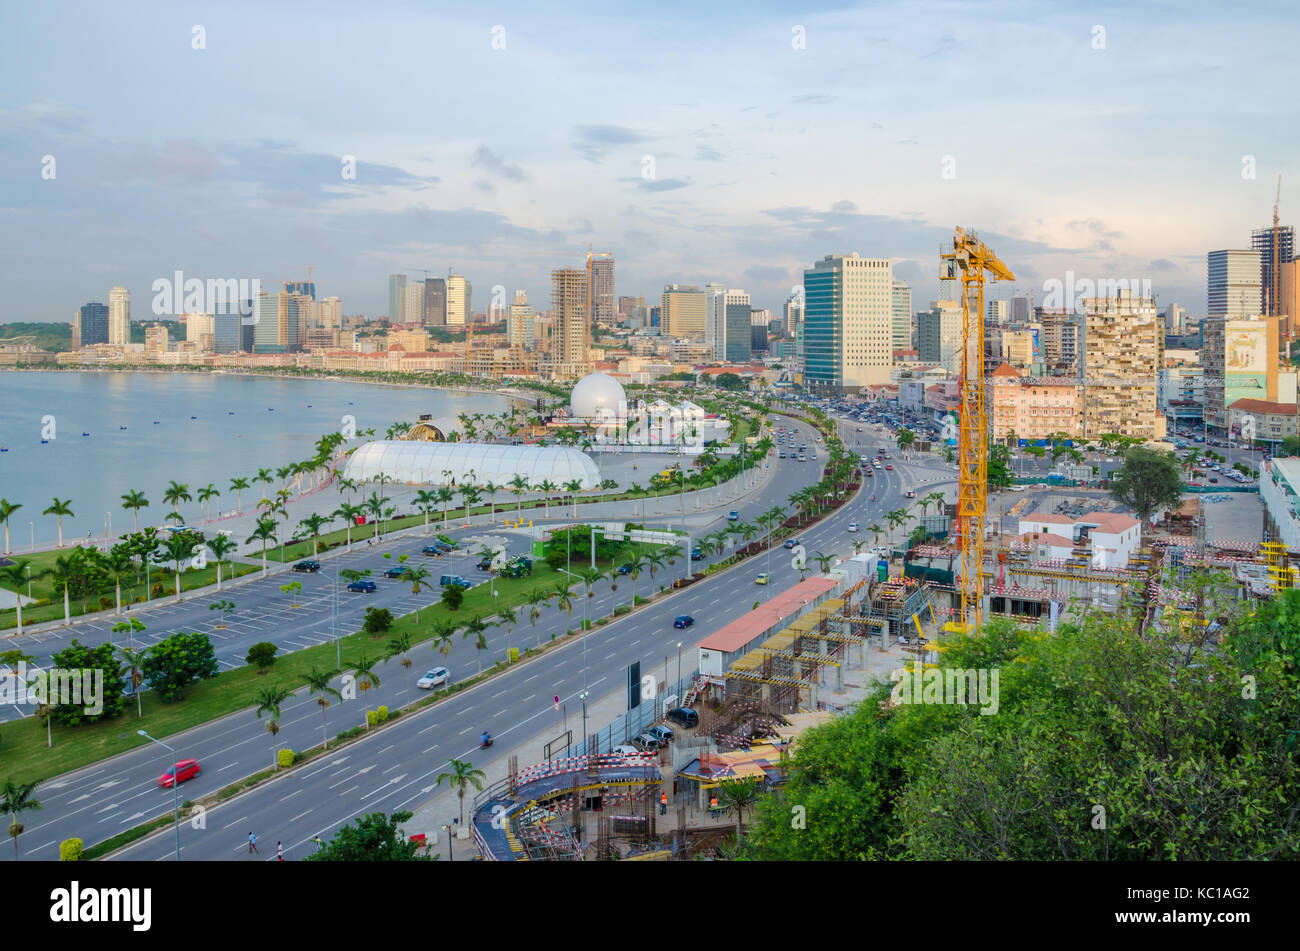 View over the skyline of Luanda with constructions cranes, highway and the Luandan bay, Angola, Southern Africa - Stock Image